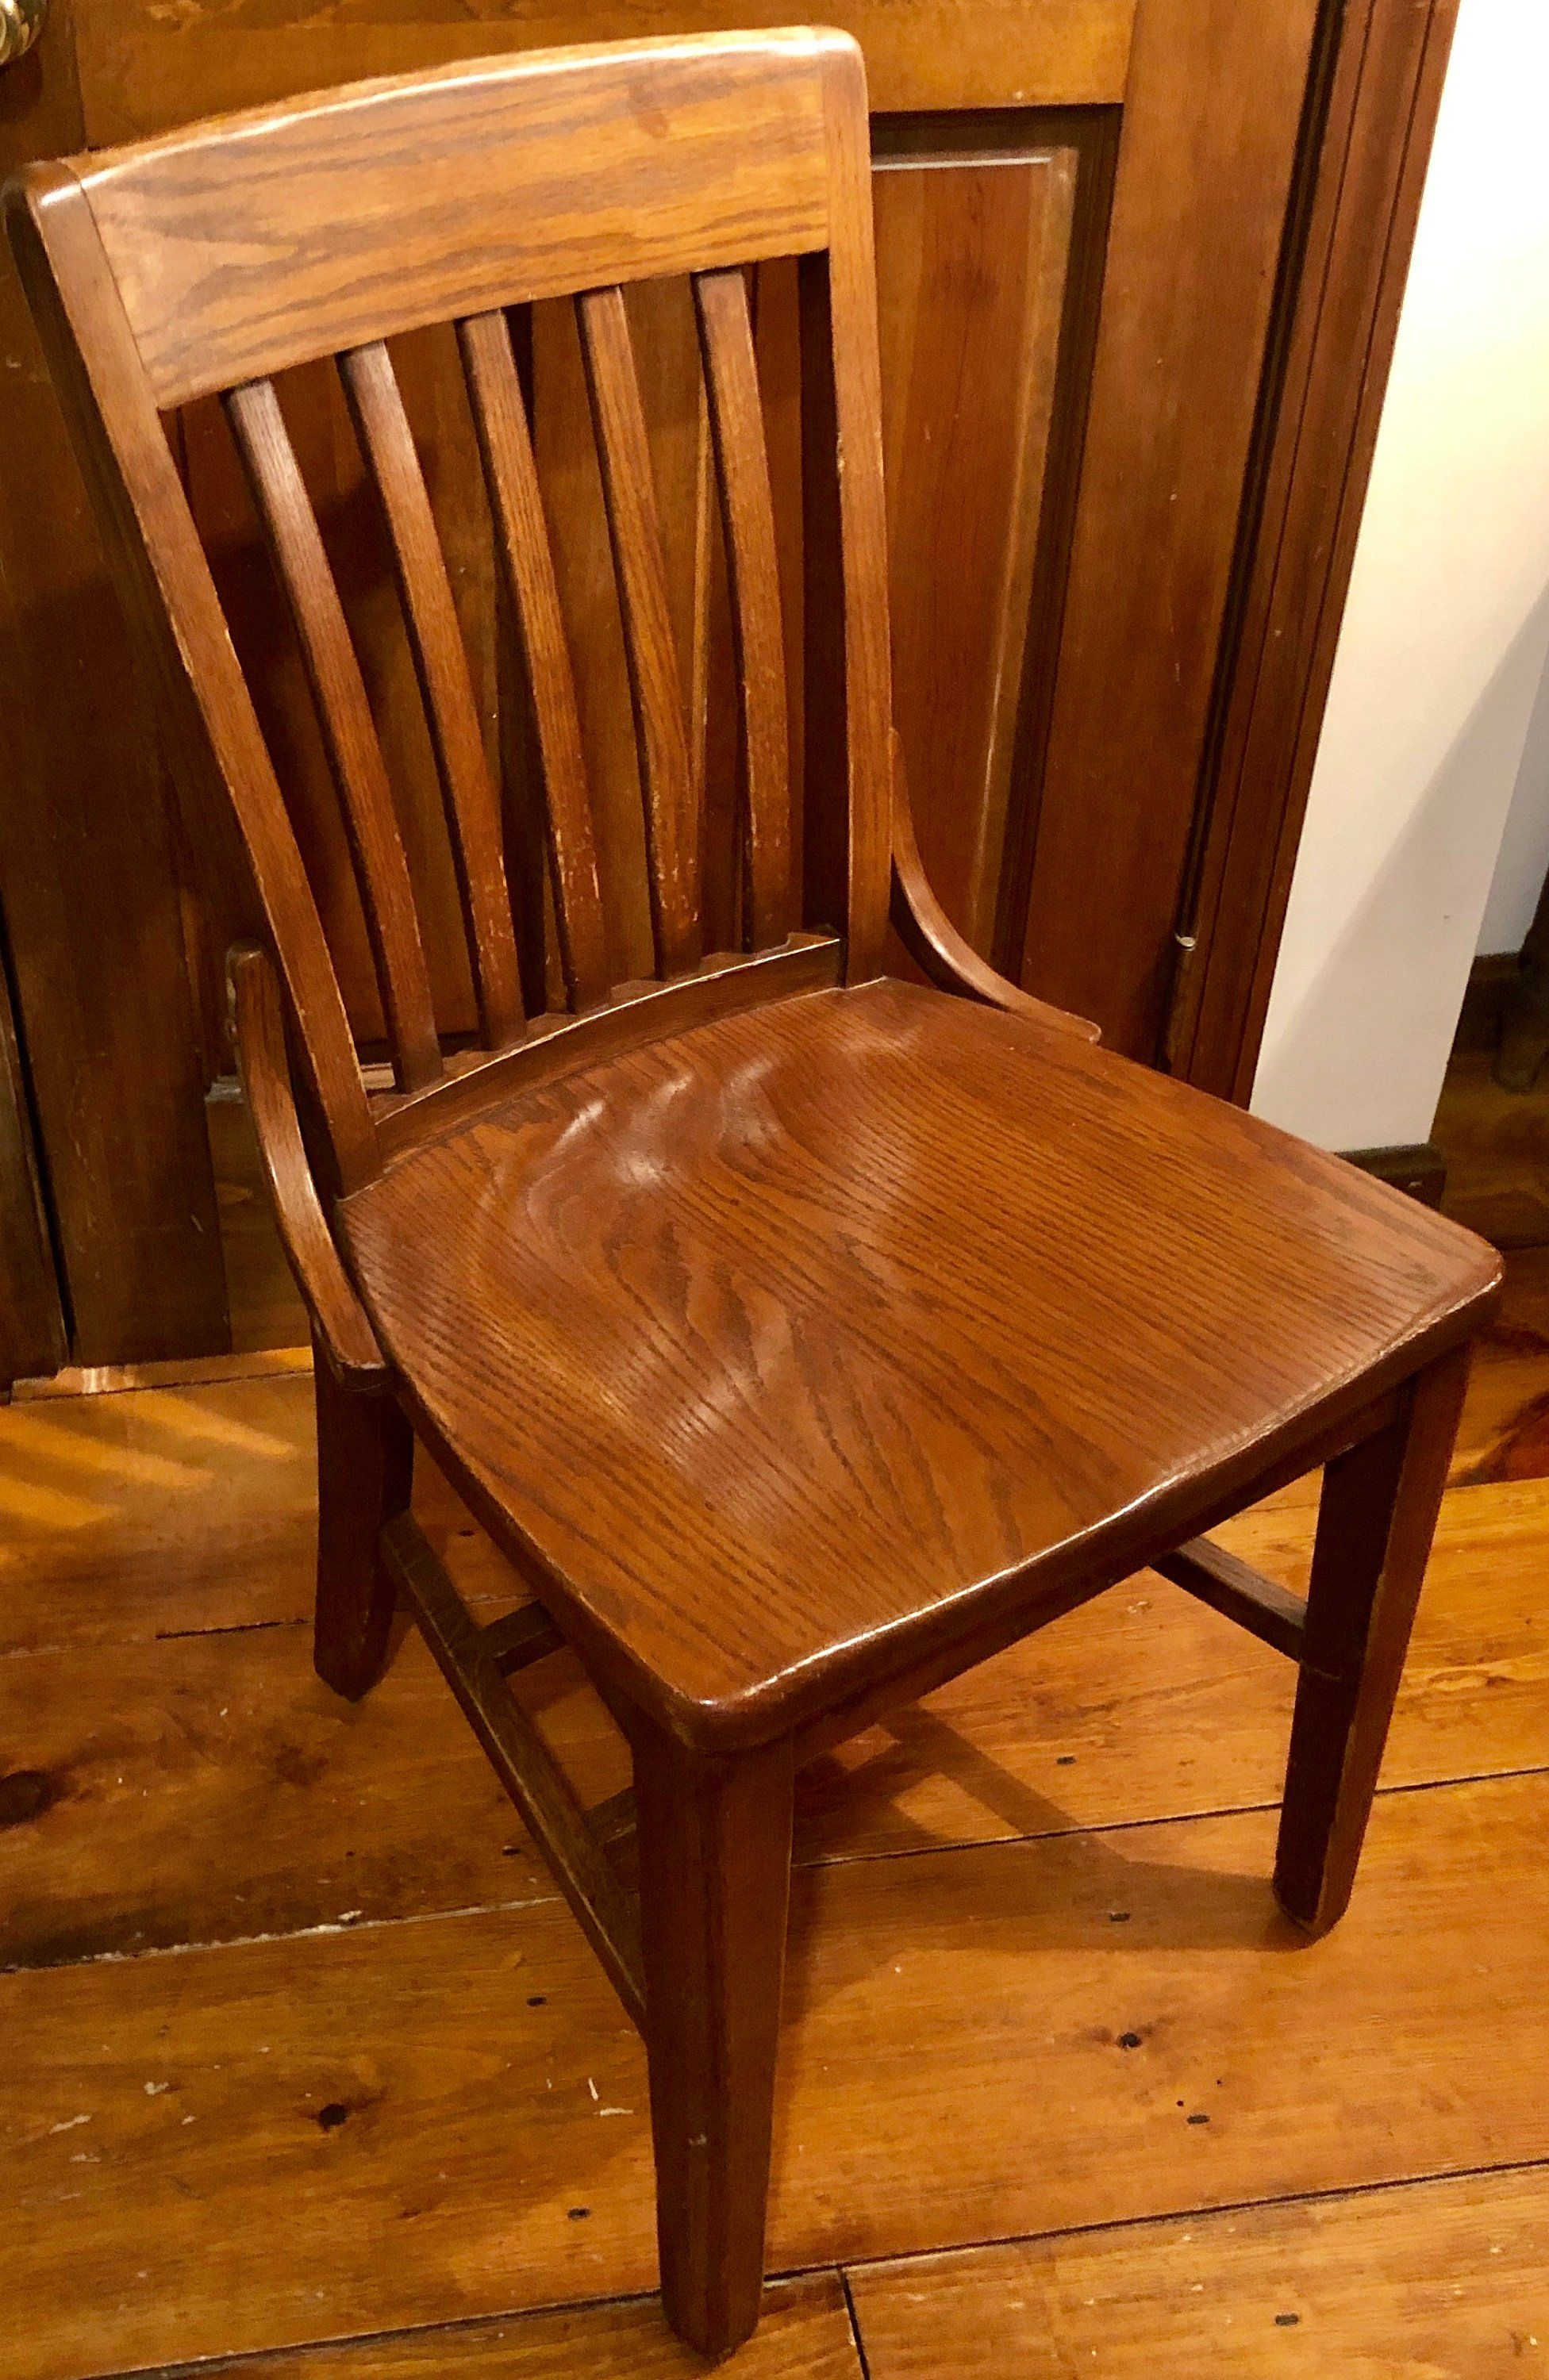 Antique Mission Oak Library, Desk, Dining Chair Dining